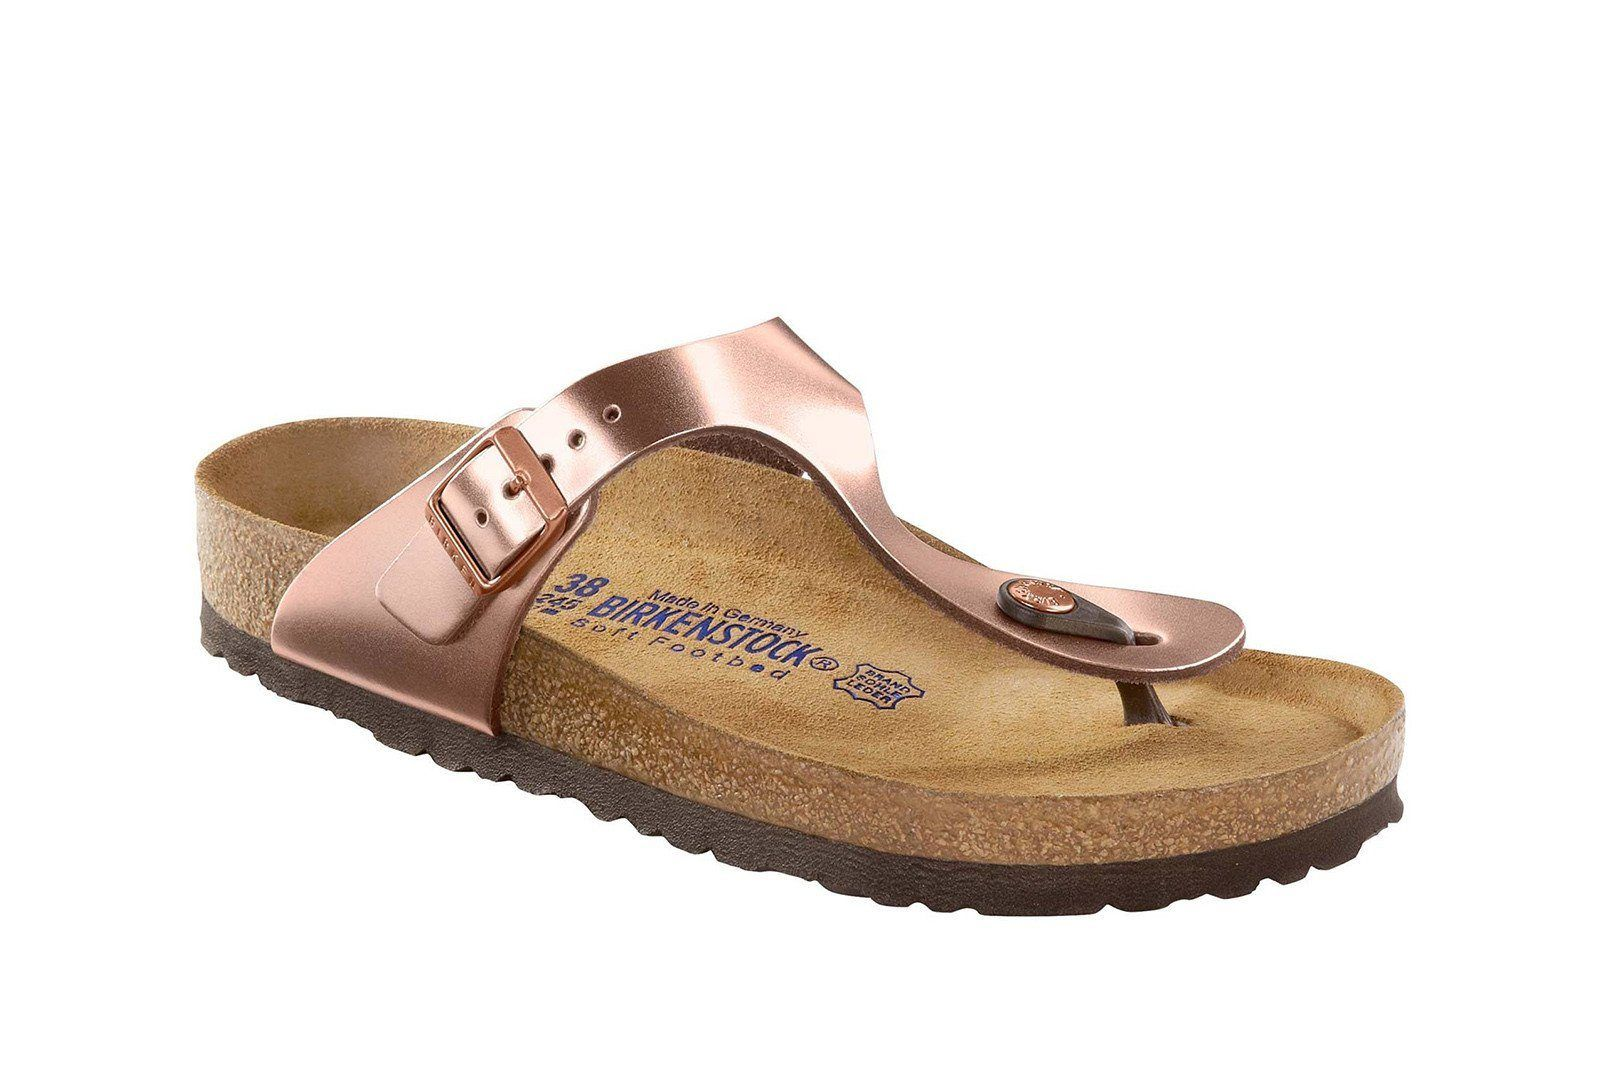 Birkenstock Gizeh (Metallic Copper) | 1004278 | Gizeh in